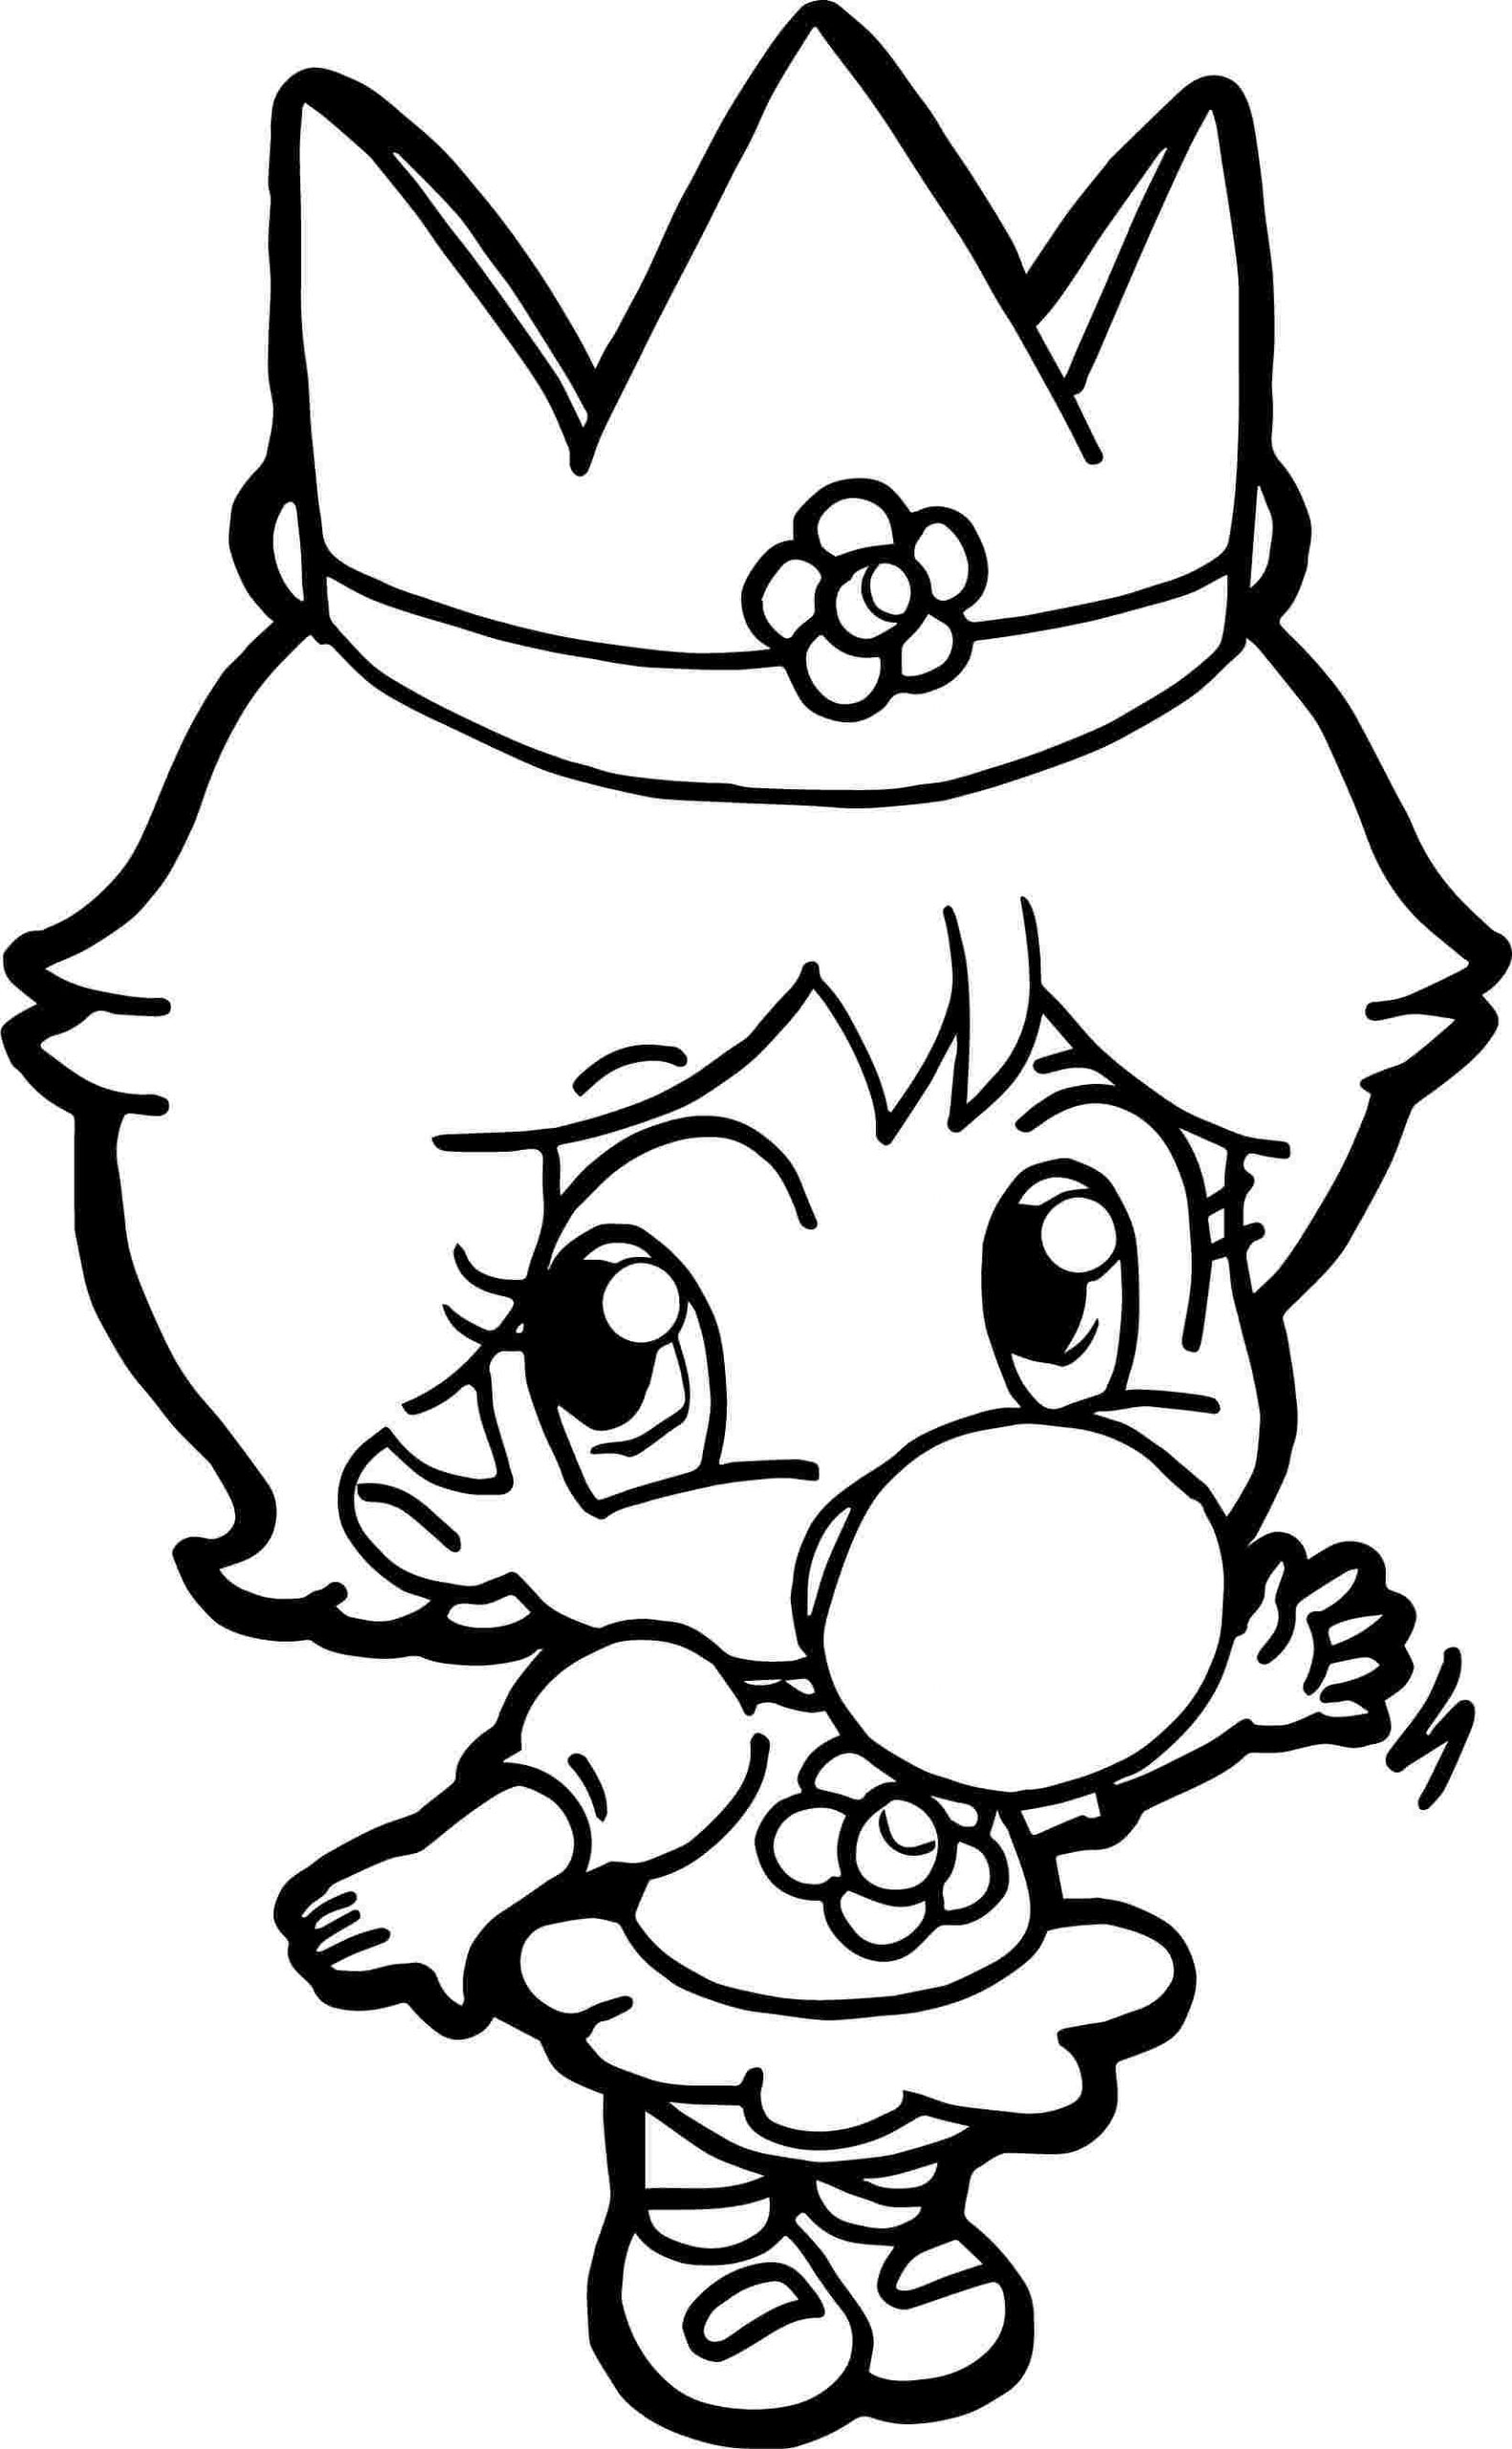 Coloring Pages Of Daisy From Mario Kart Princess Daisy And concernant Coloriage Dora Princesse